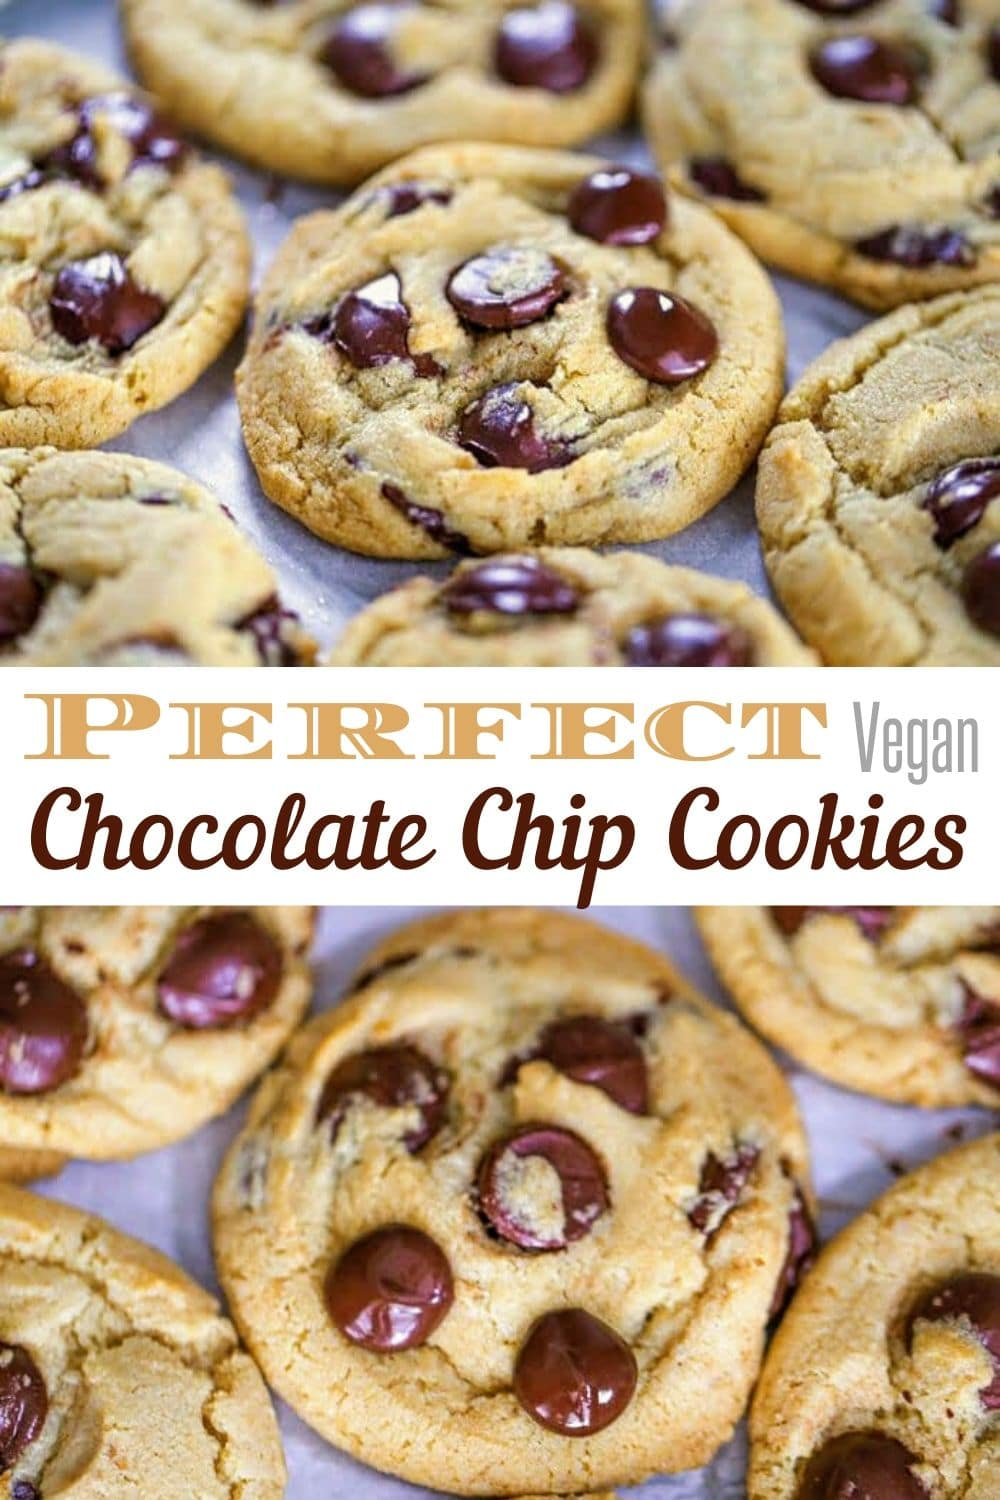 Perfect Vegan Chocolate Chip Cookies for Pinterest